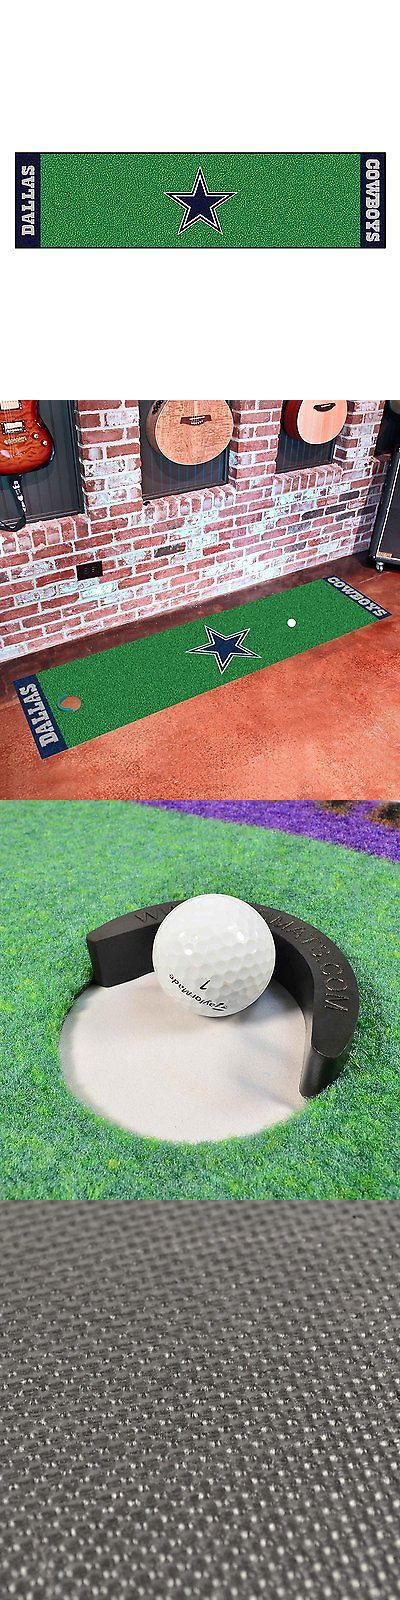 Putting Greens and Aids 36234: Nfl Indoor Golf Putting Green Realistic Mat Cowboys Durable Nylon Training Tool -> BUY IT NOW ONLY: $54.92 on eBay!